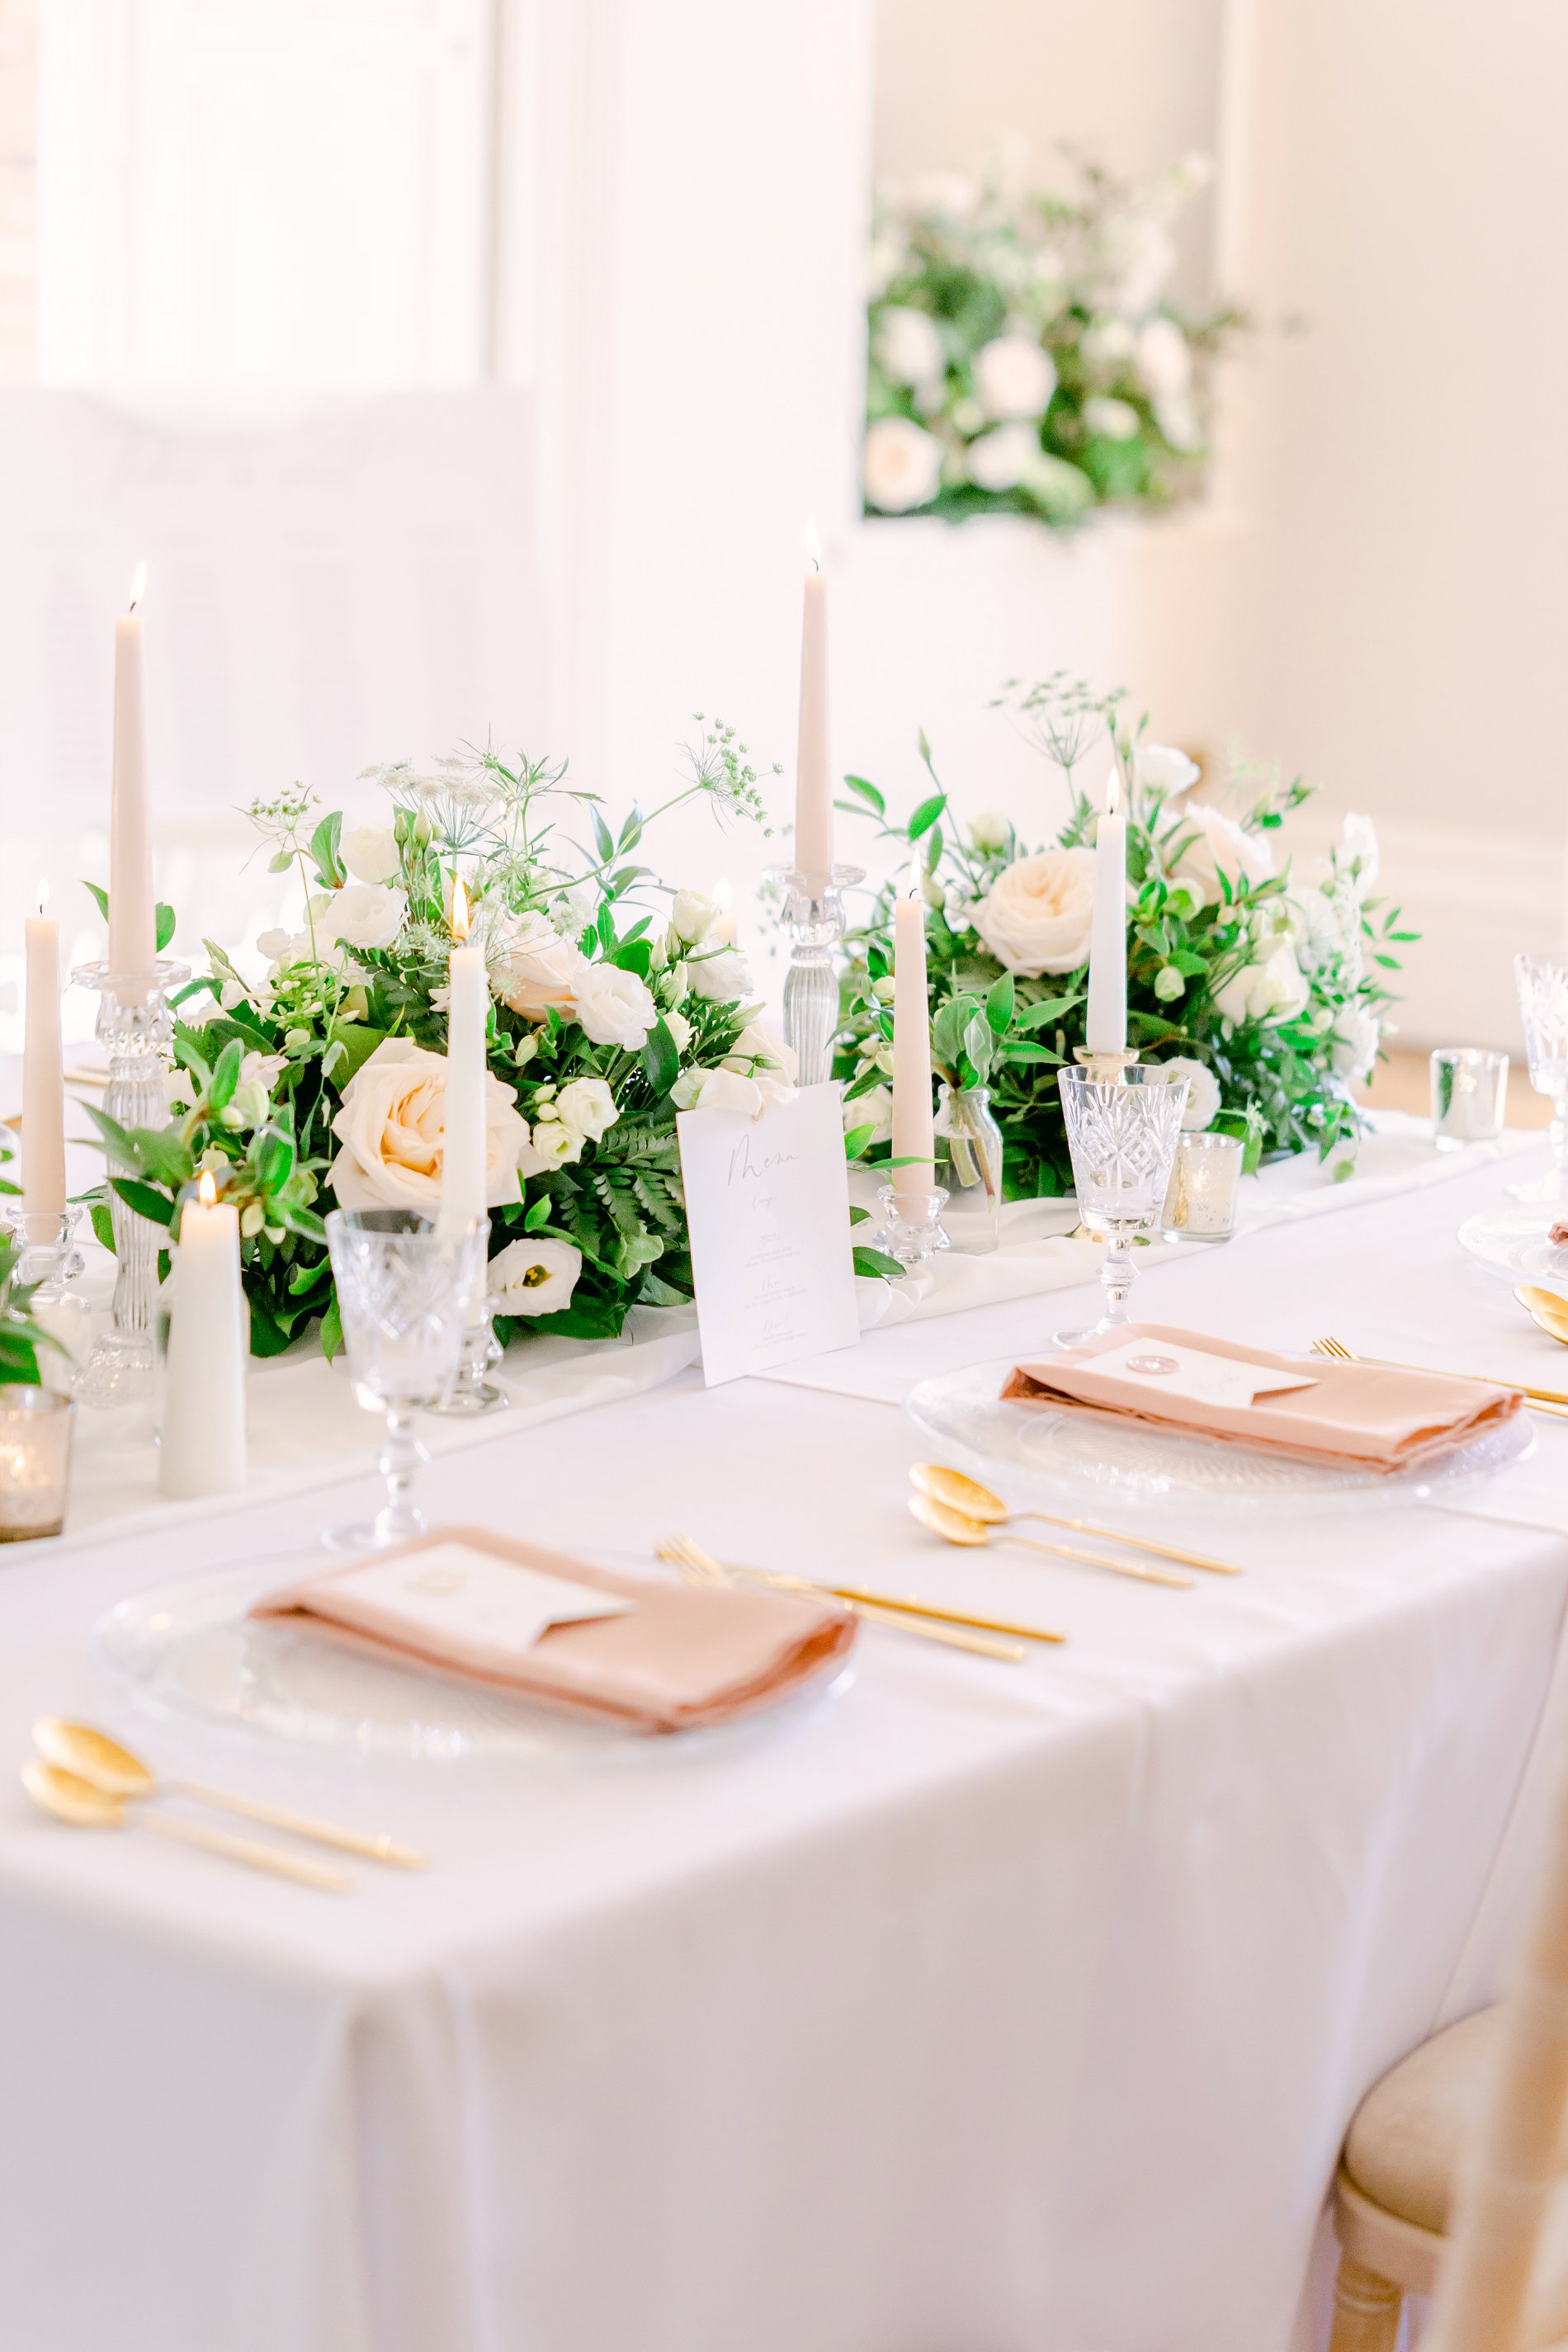 An Elegant UNVEILED Network wedding shoot at Hirst Priory (c) Ailsa Reeve Photography (13)